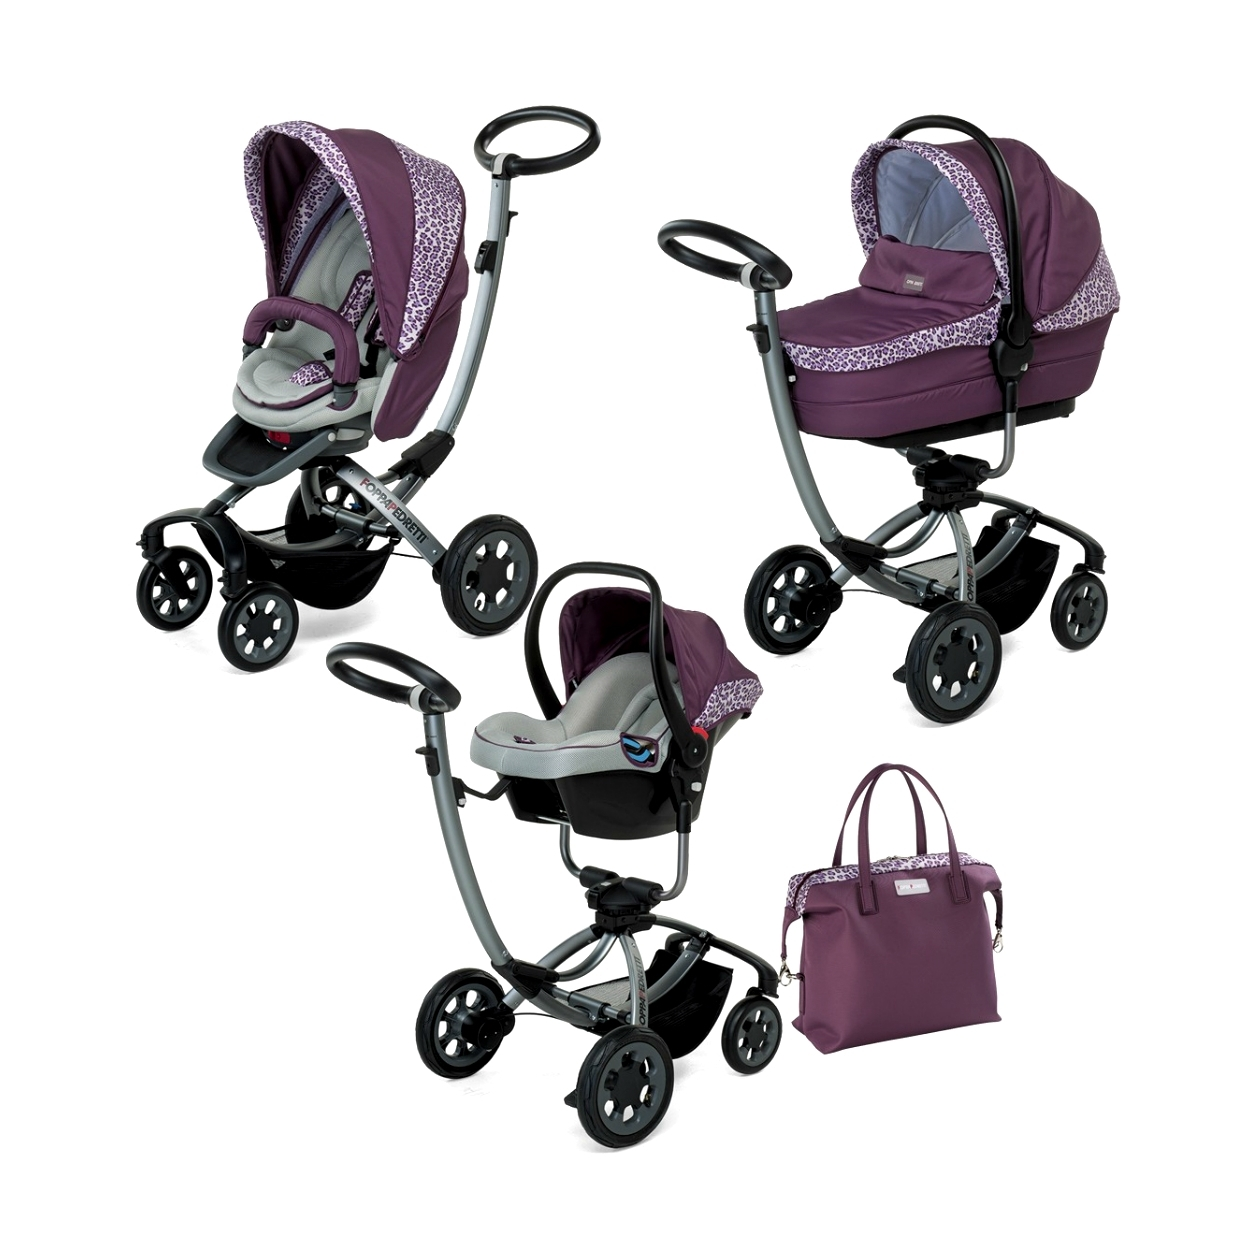 Коляска 3 в 1 Foppapedretti Myo Travel System VioletGungle